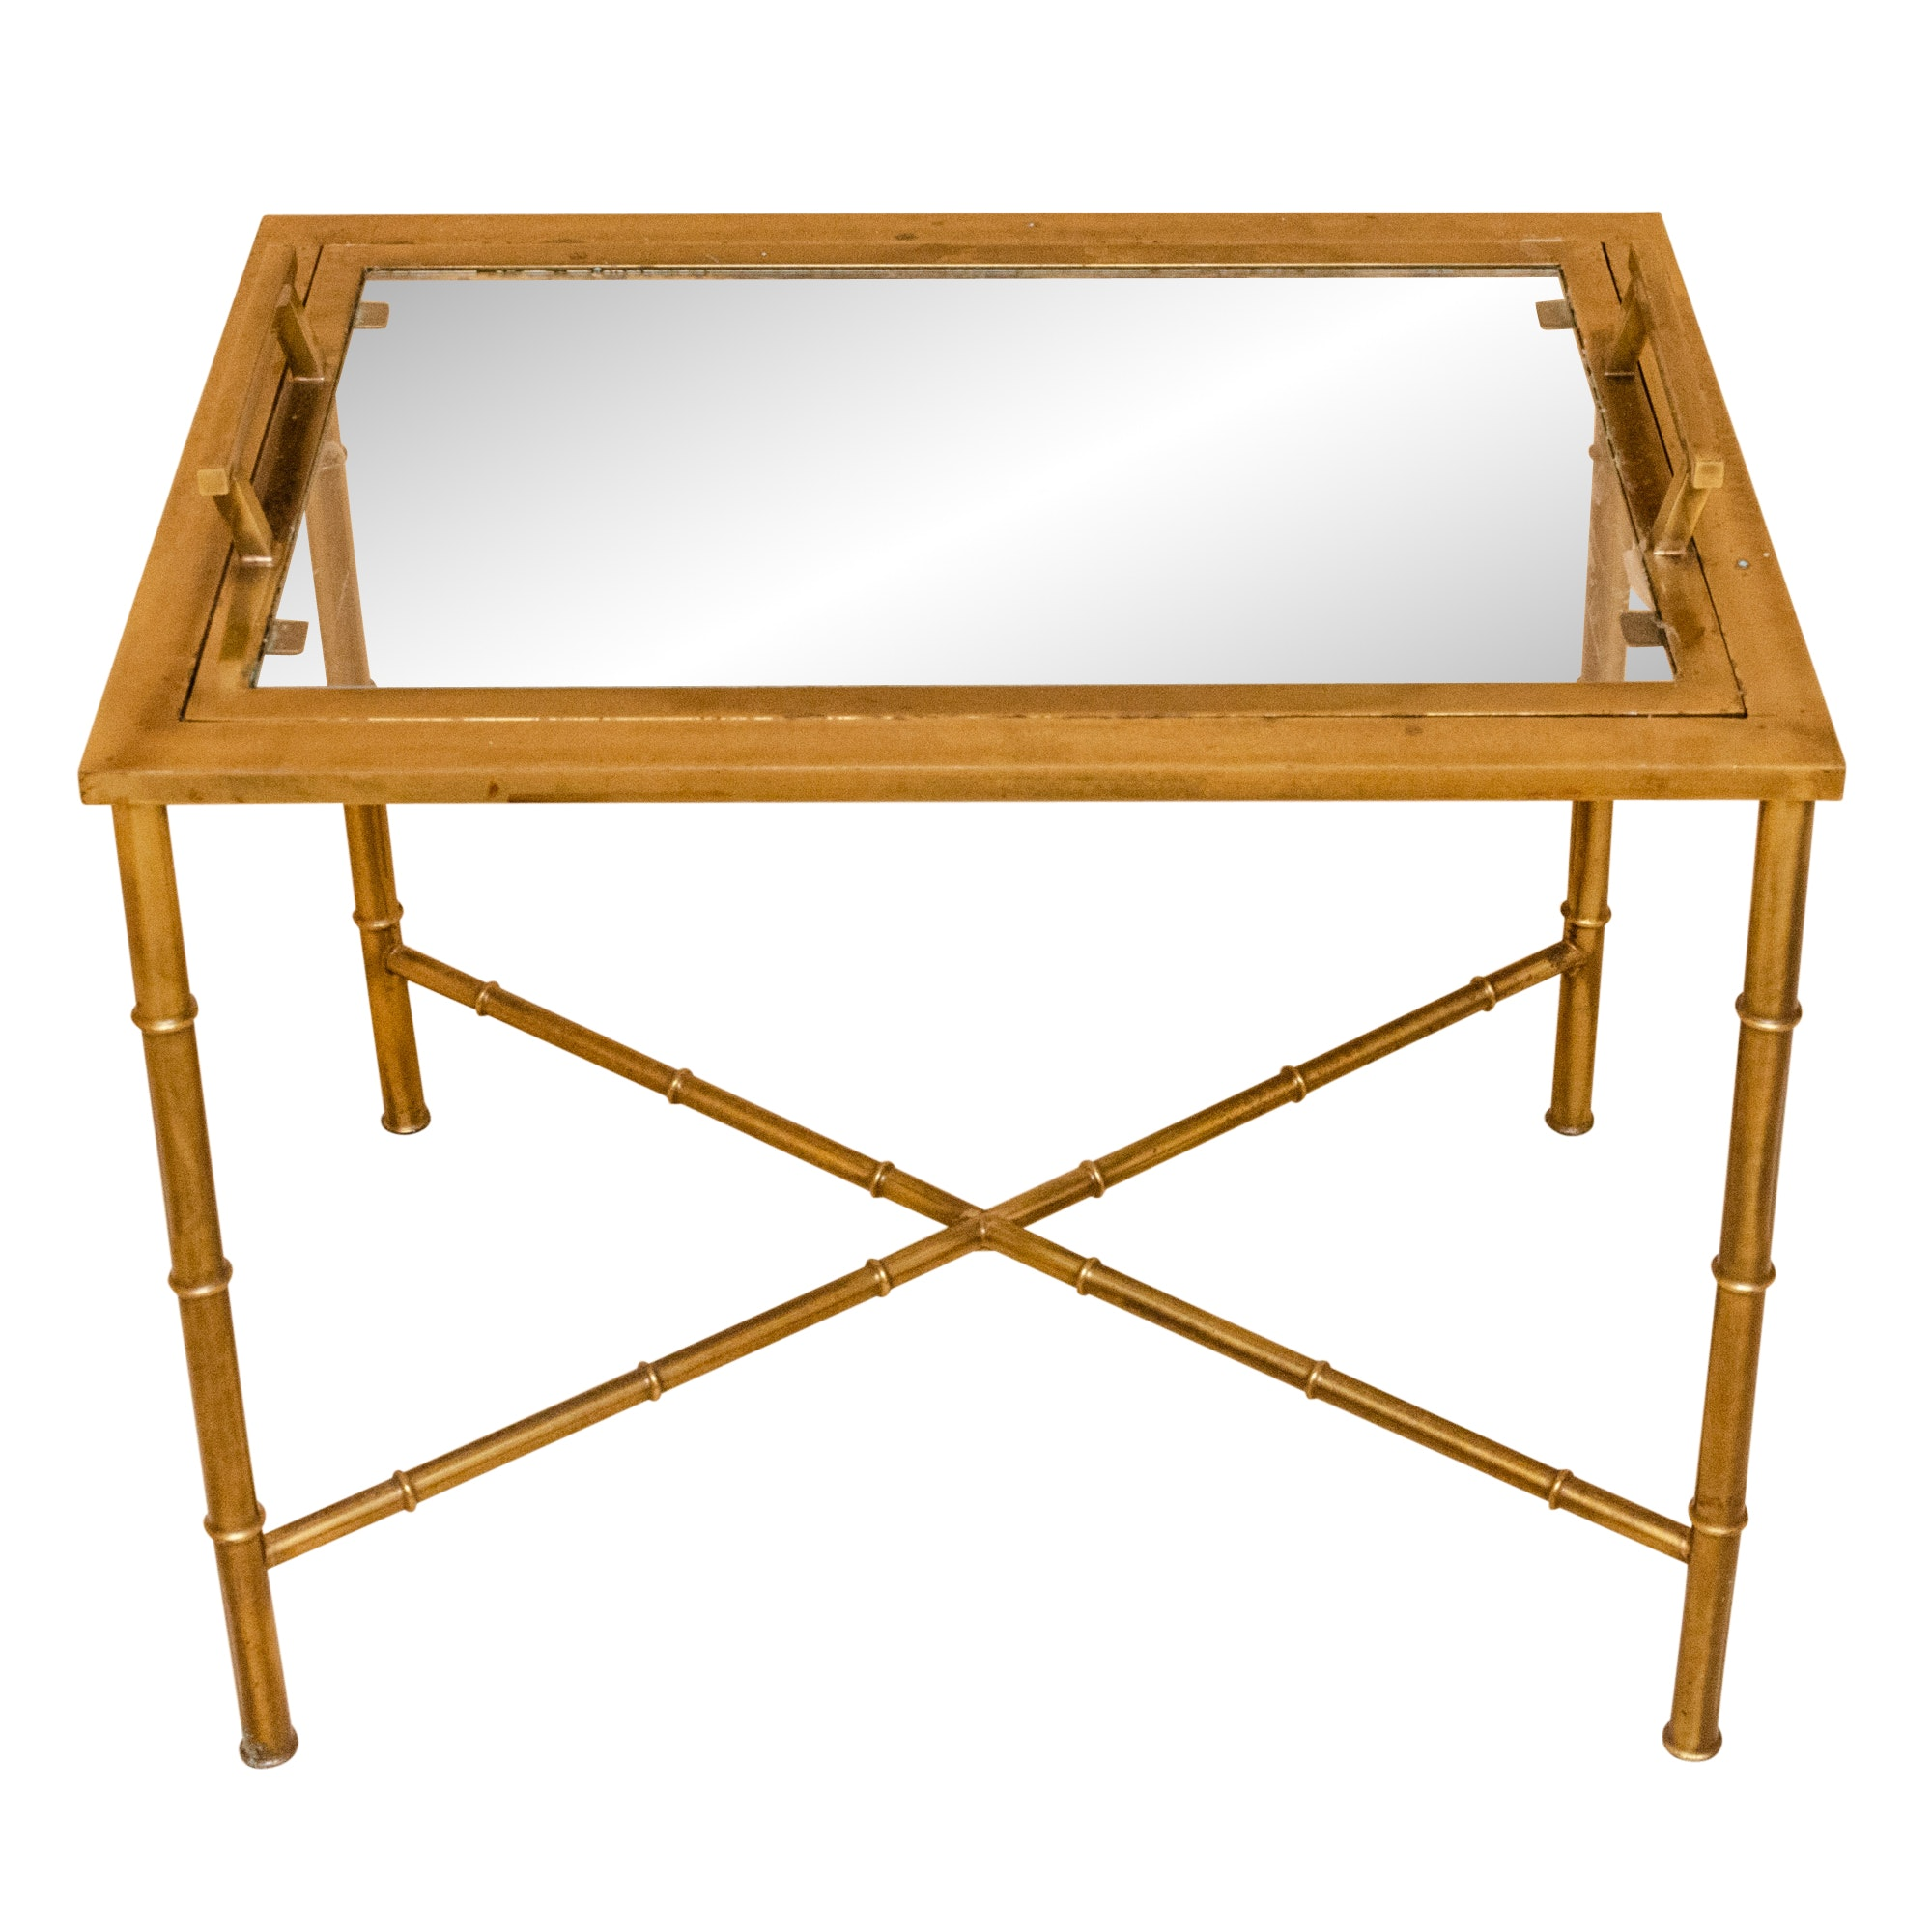 Brass Serving Table with Bamboo Style Frame